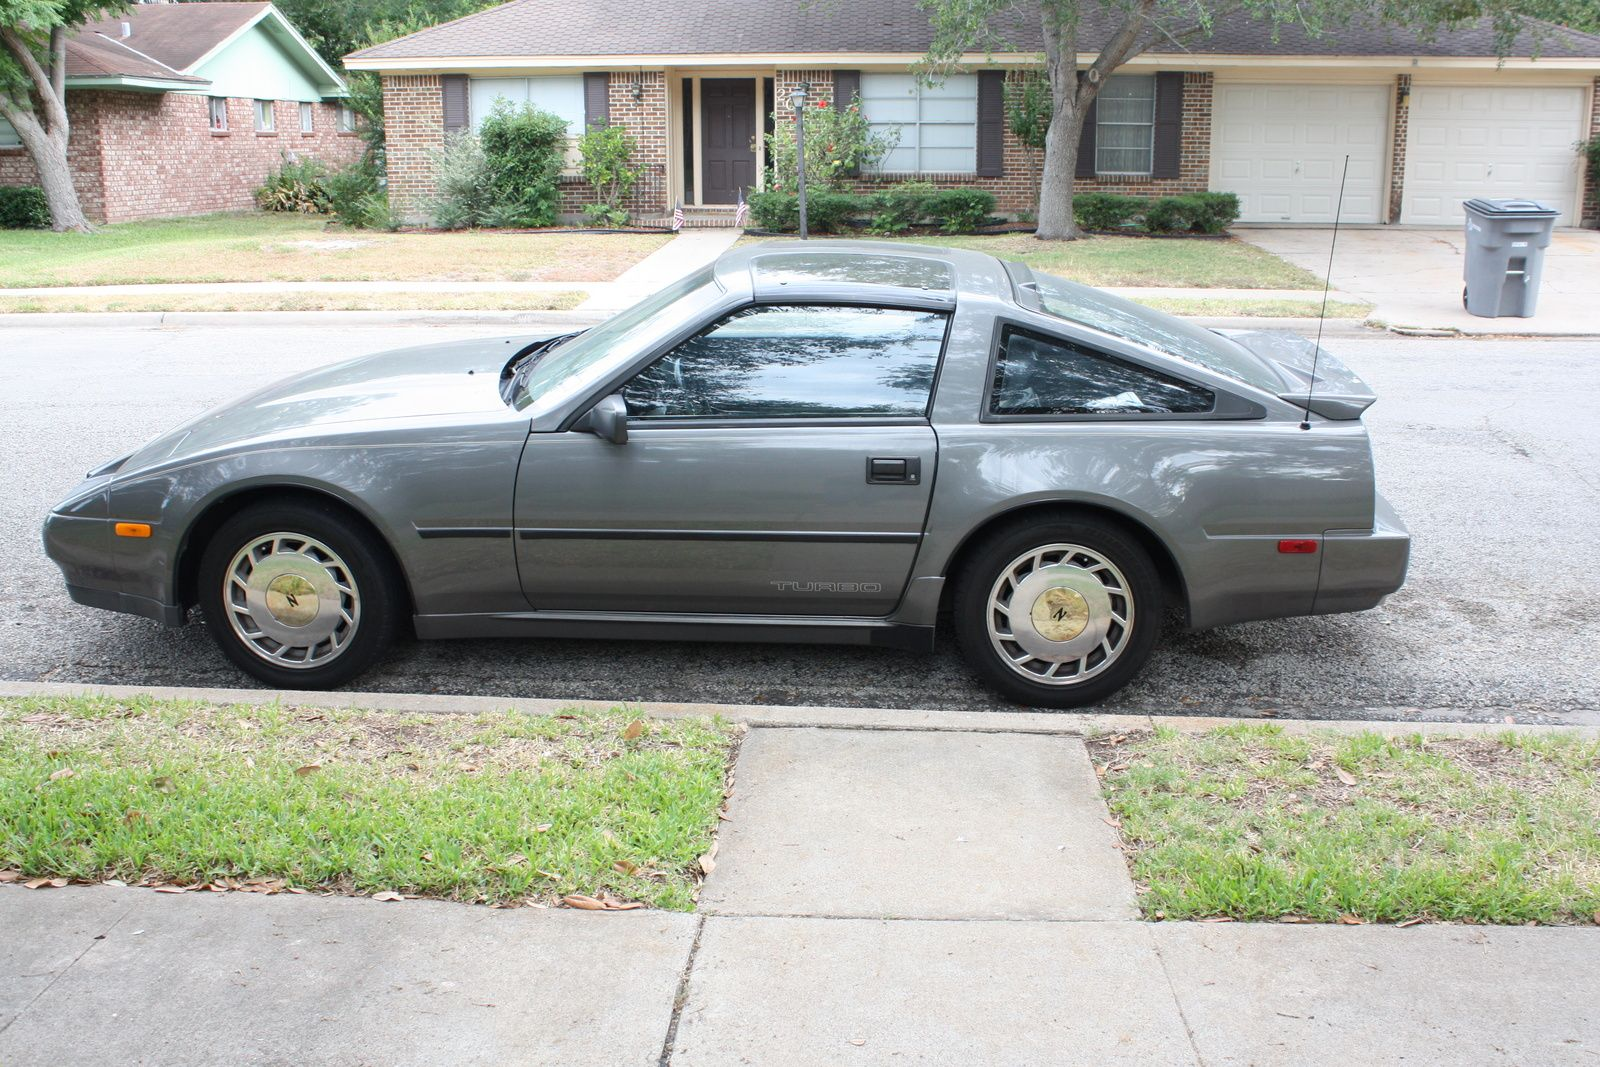 1987 nissan 300zx manual transmission things i dig and will rh pinterest com 1987 nissan 300zx factory service manual 1987 nissan 300zx repair manual